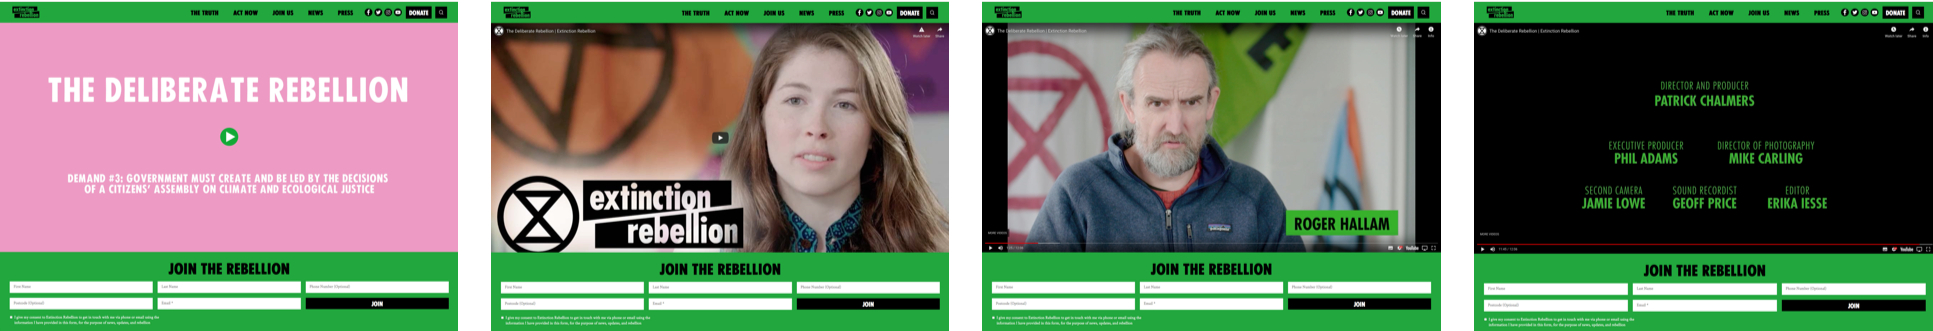 The film took pride of place on the homepage of Extinction Rebellion's website in support of the launch.